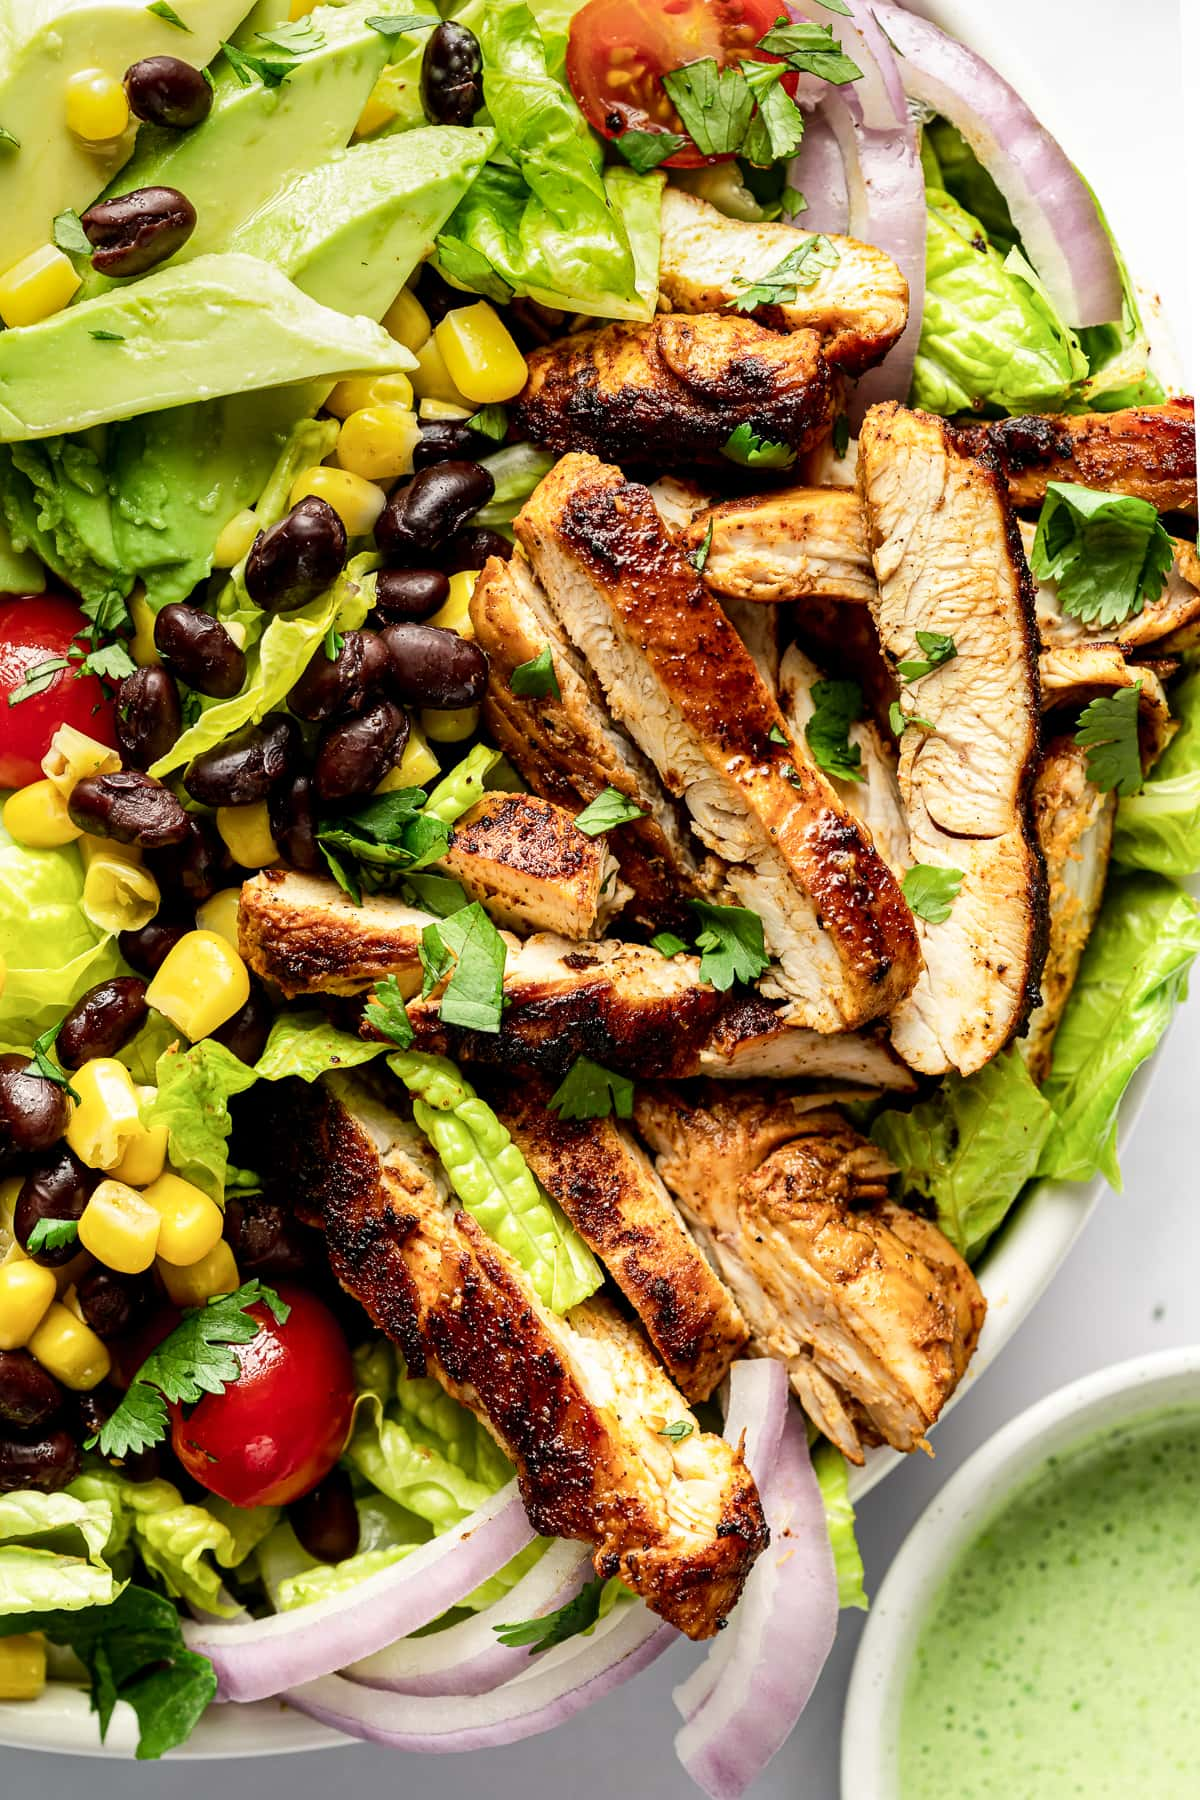 Southwest chicken salad topped with sliced marinated chicken, black beans, corn, and tomatoes.